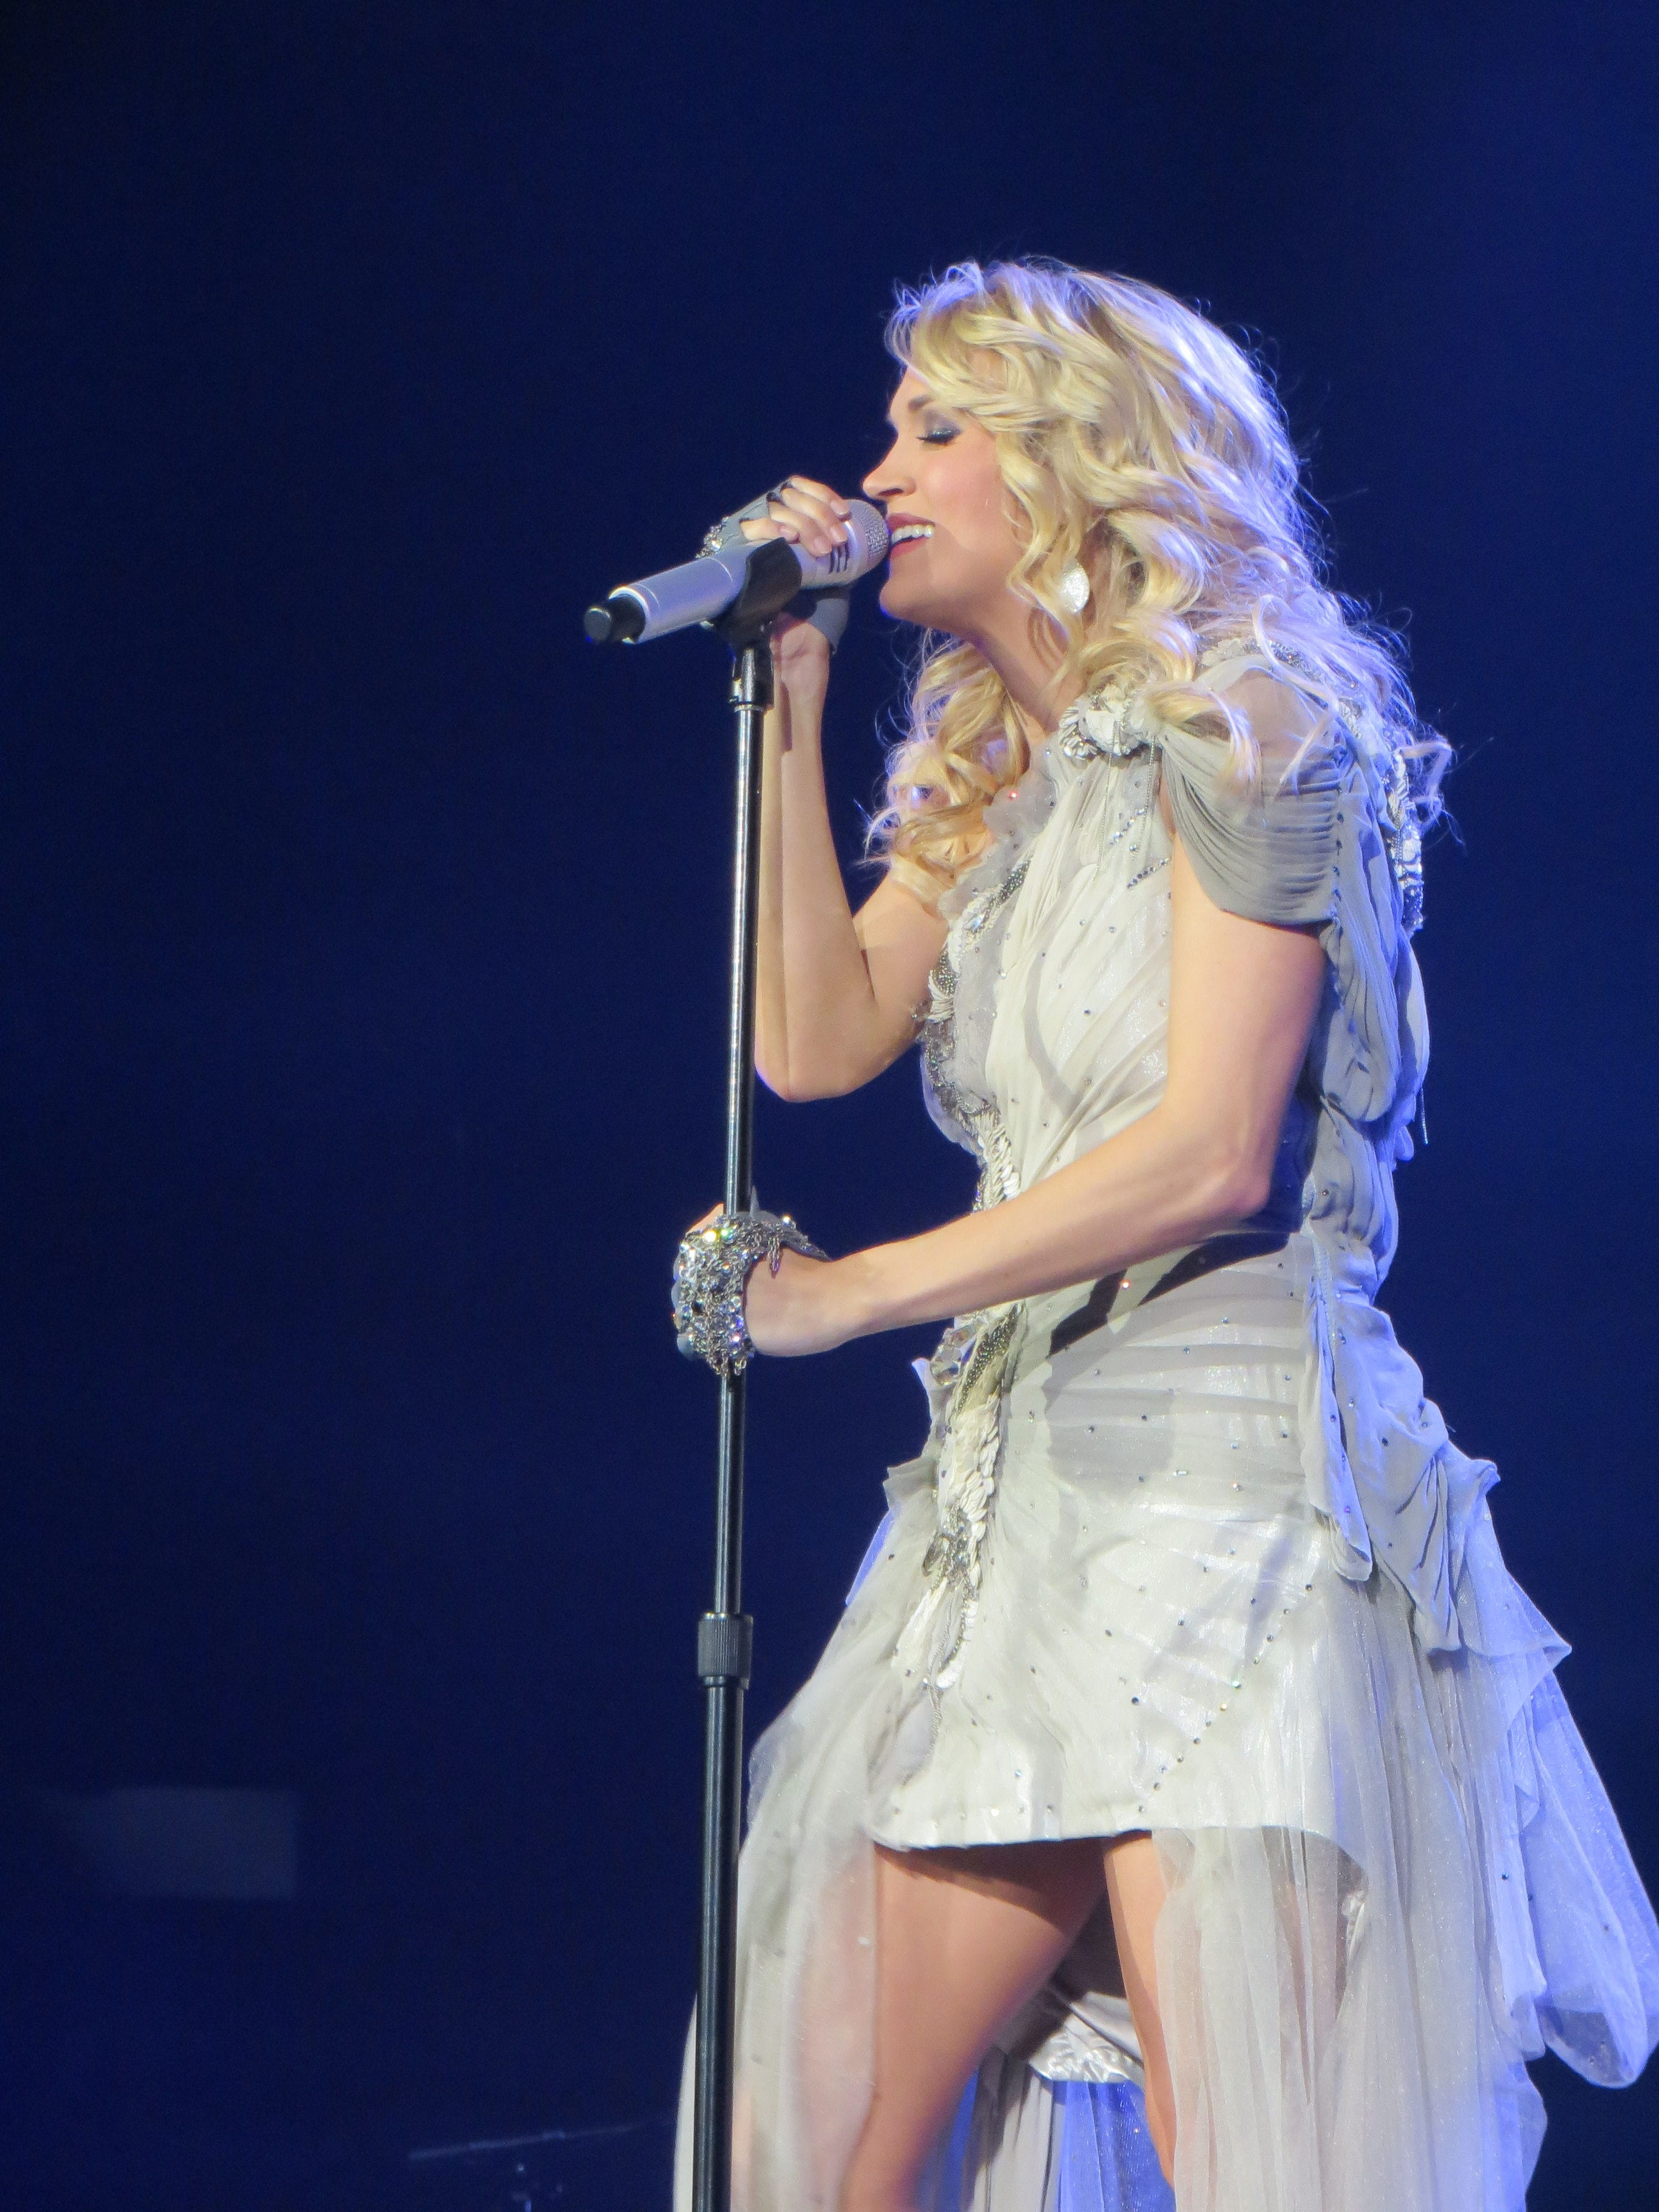 Carrie Underwood For mobile